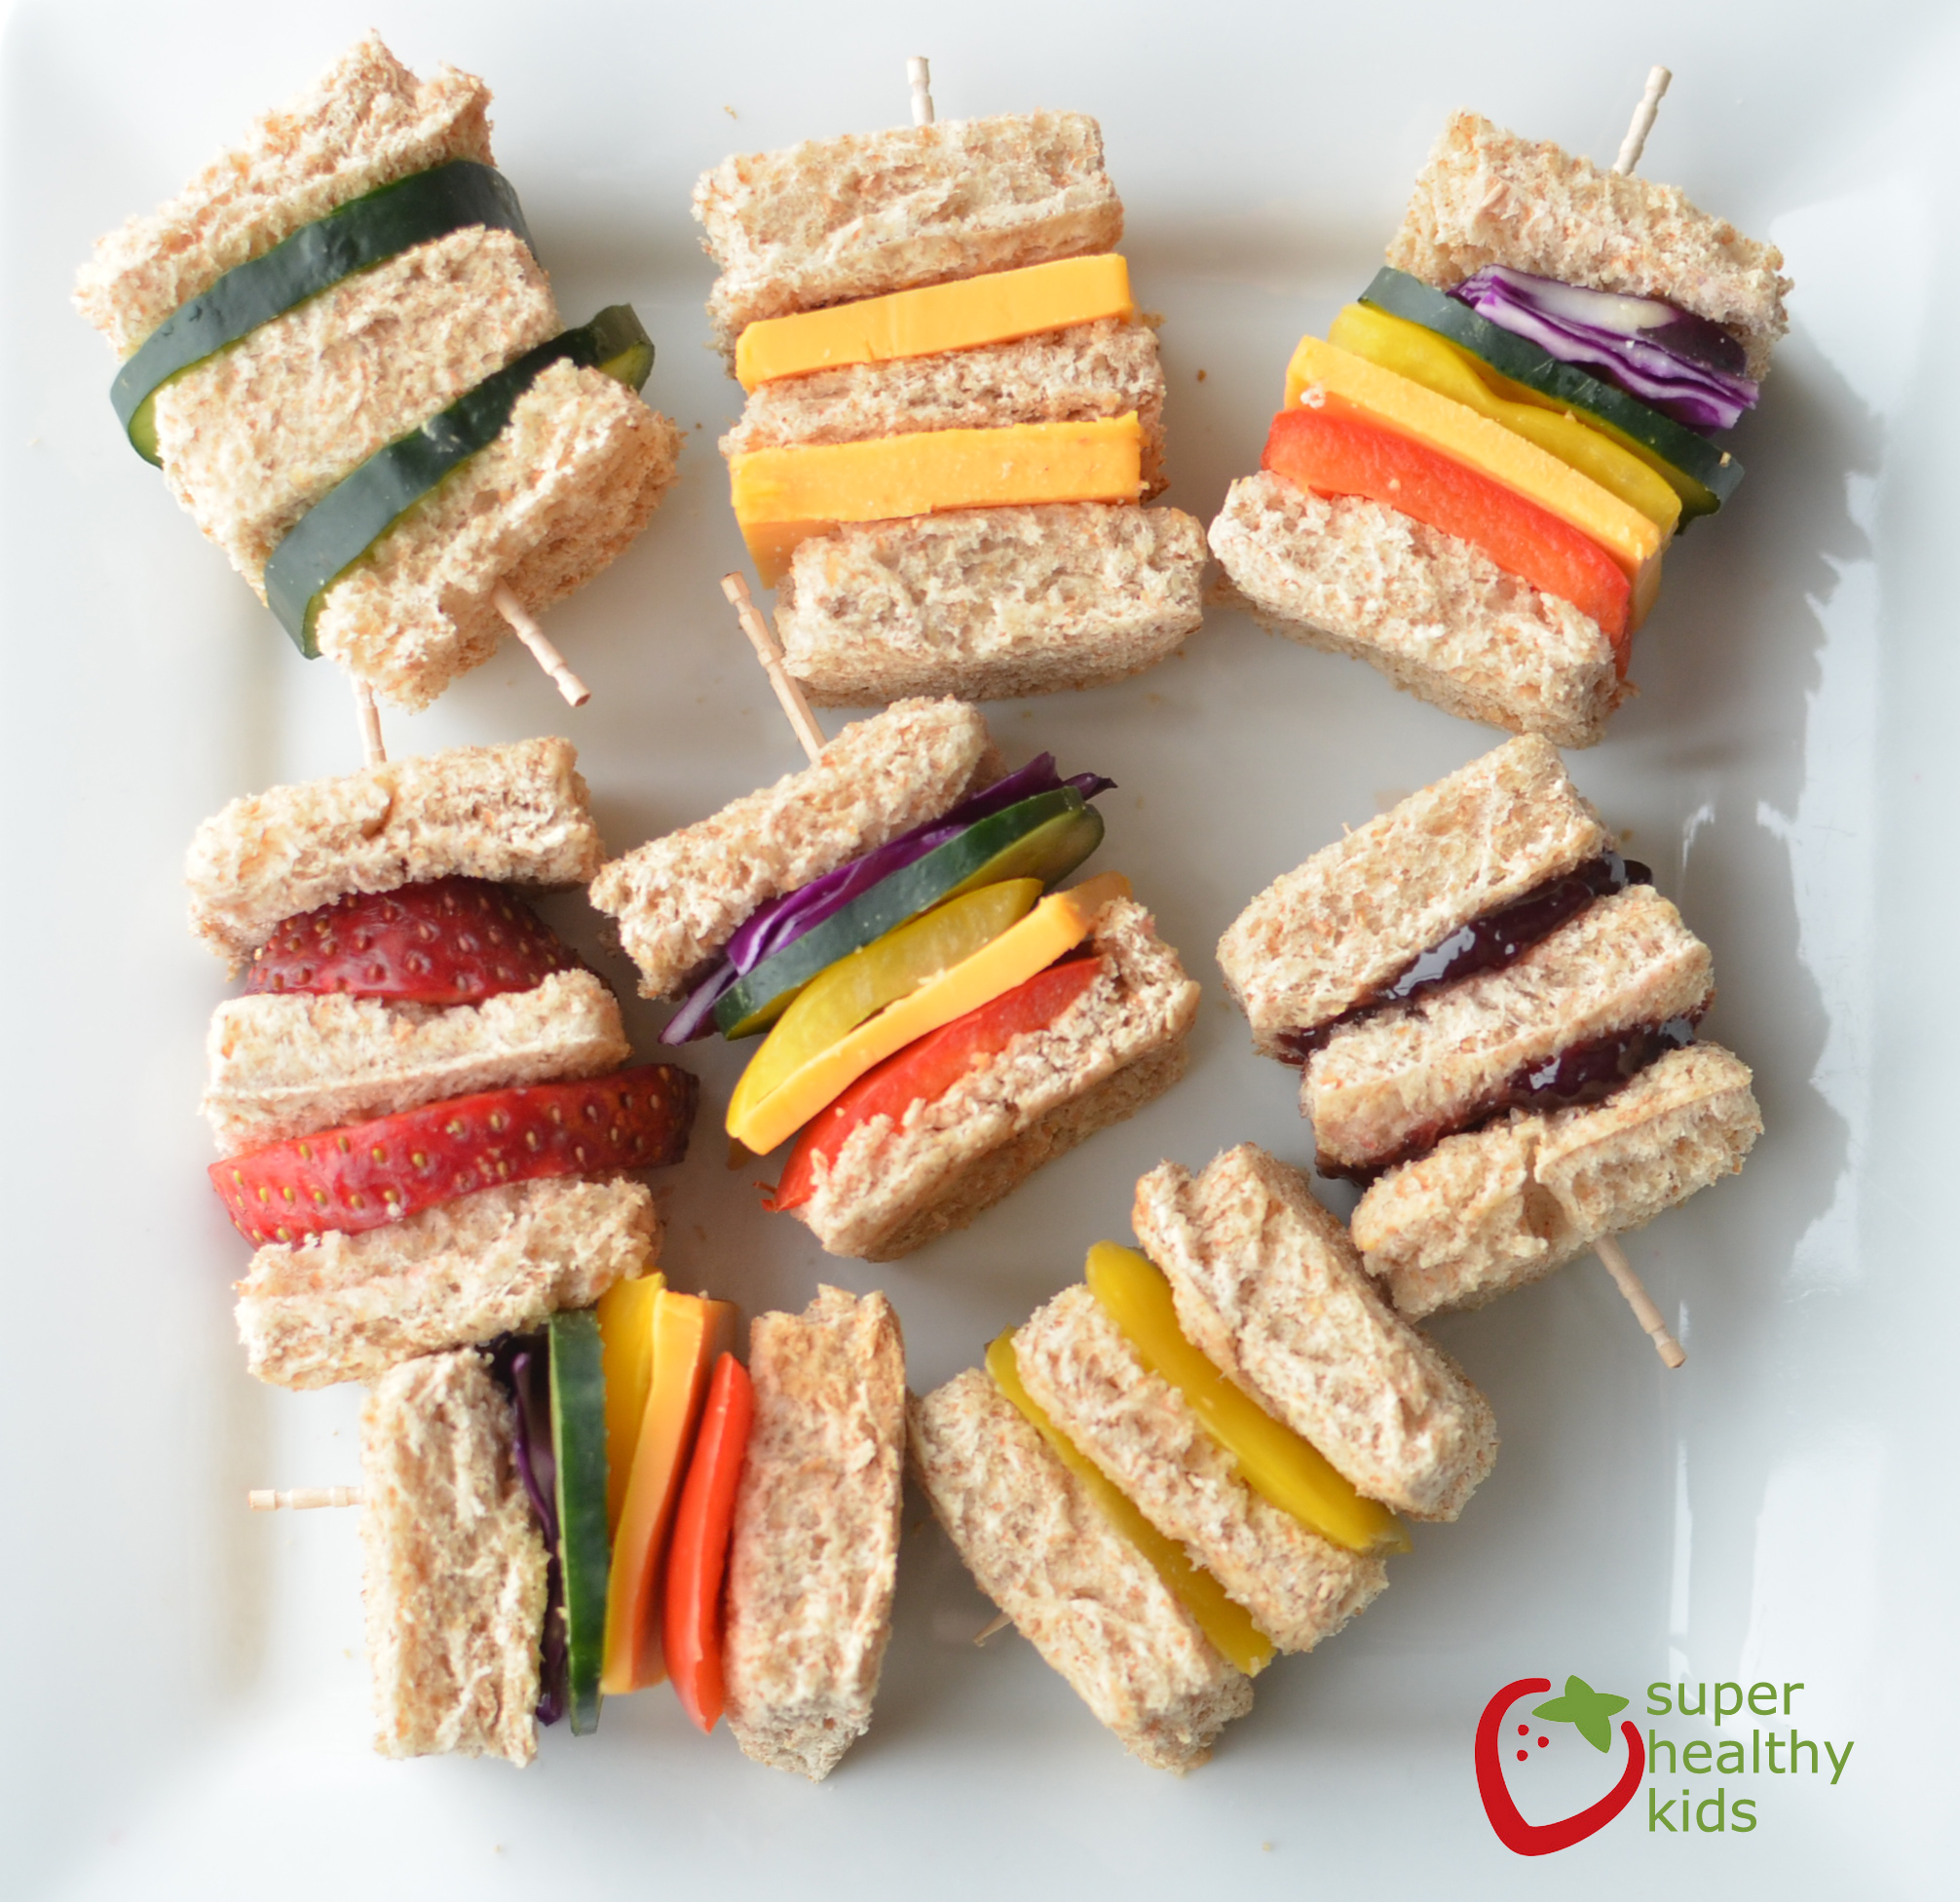 10 Healthy Breakfasts Help Kids Well School as well  moreover Kix Cereal Food Art A Fruity Caterpillar Snack For Kids in addition Valentines Day Breakfast Ideas additionally 14 Kids Cute Sandwich Ideas. on healthy fun kids sandwiches